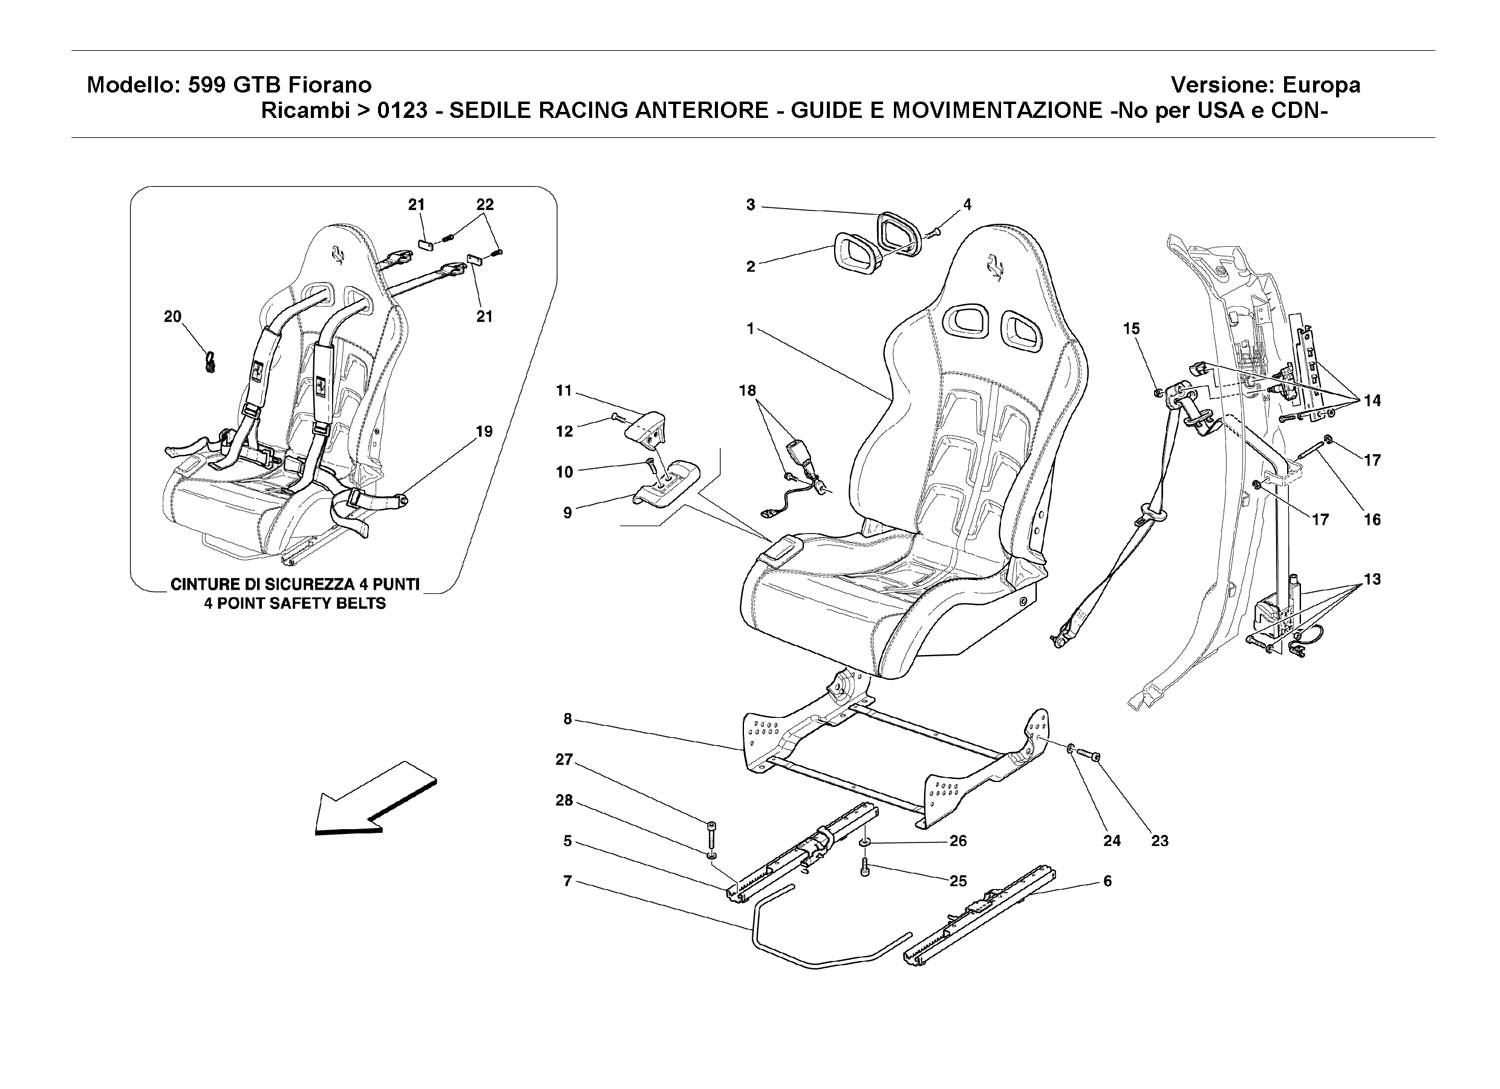 FRONT RACING SEAT - GUIDE AND MOVEMENT -Not for USA and CDN-